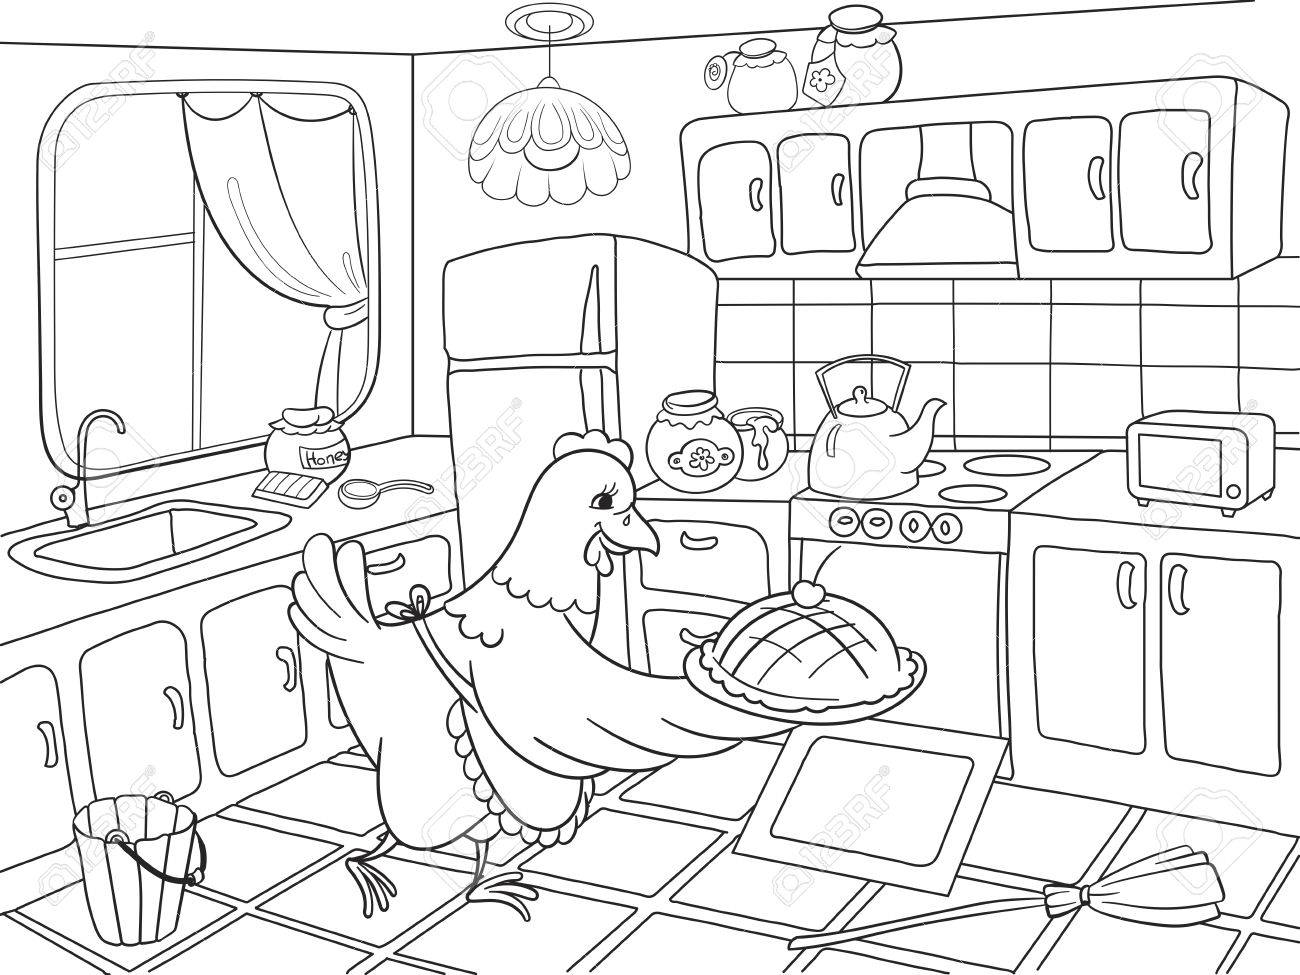 Coloring book kitchen - Mom Chicken In The Kitchen Prepares Food For The Family Coloring Book For Children Cartoon Vector